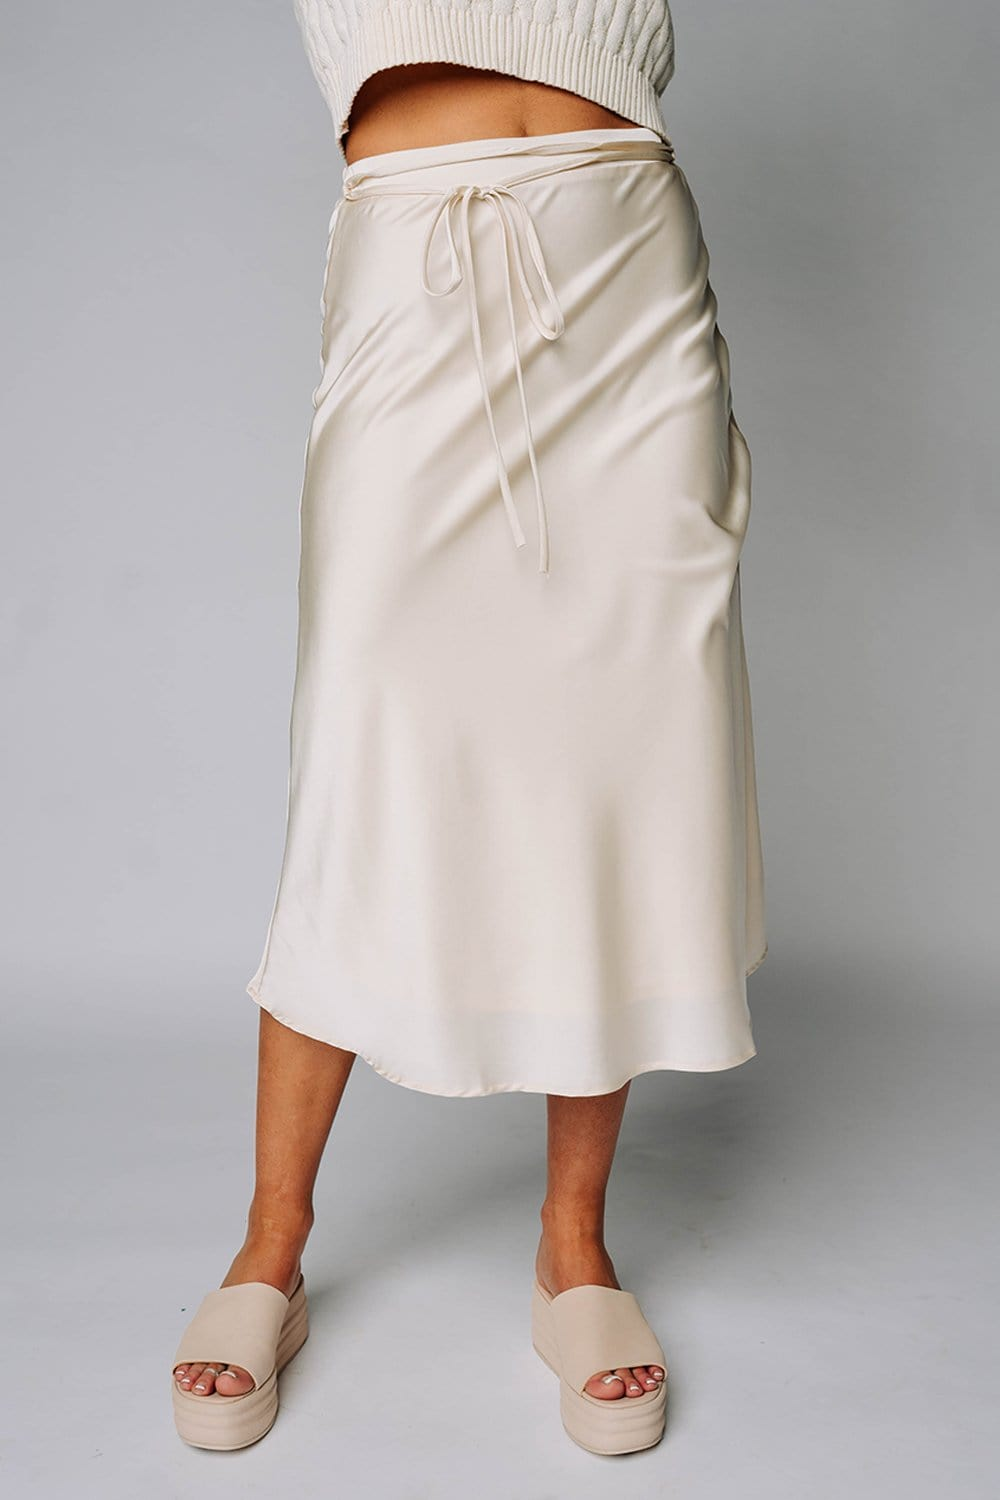 Renesmee Satin Midi Skirt in Bone